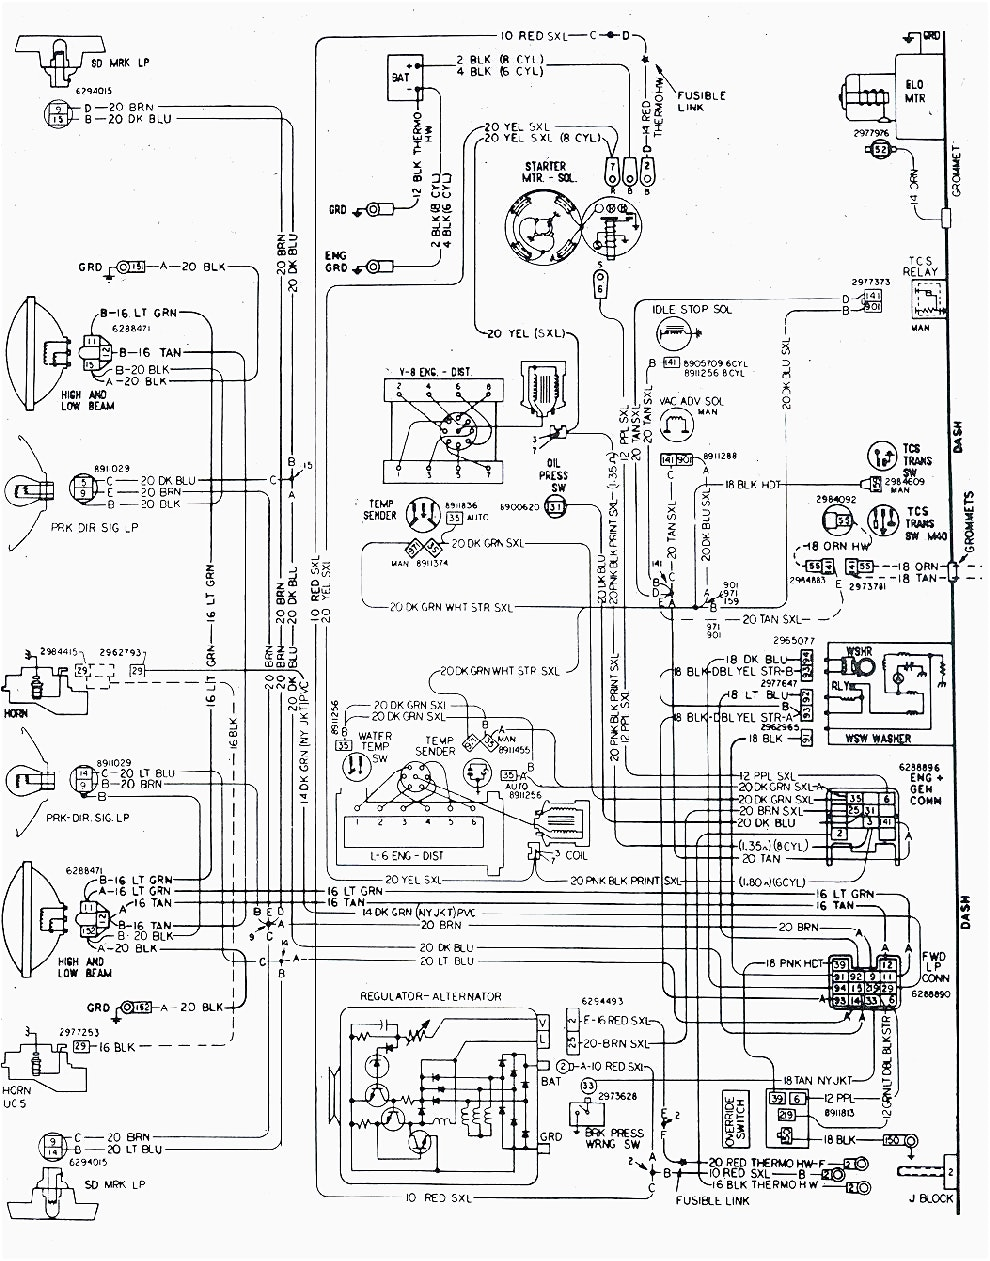 basic auto ac wiring diagram venn of complement sets 69 camaro switch libraries69 electrical diagramrelated